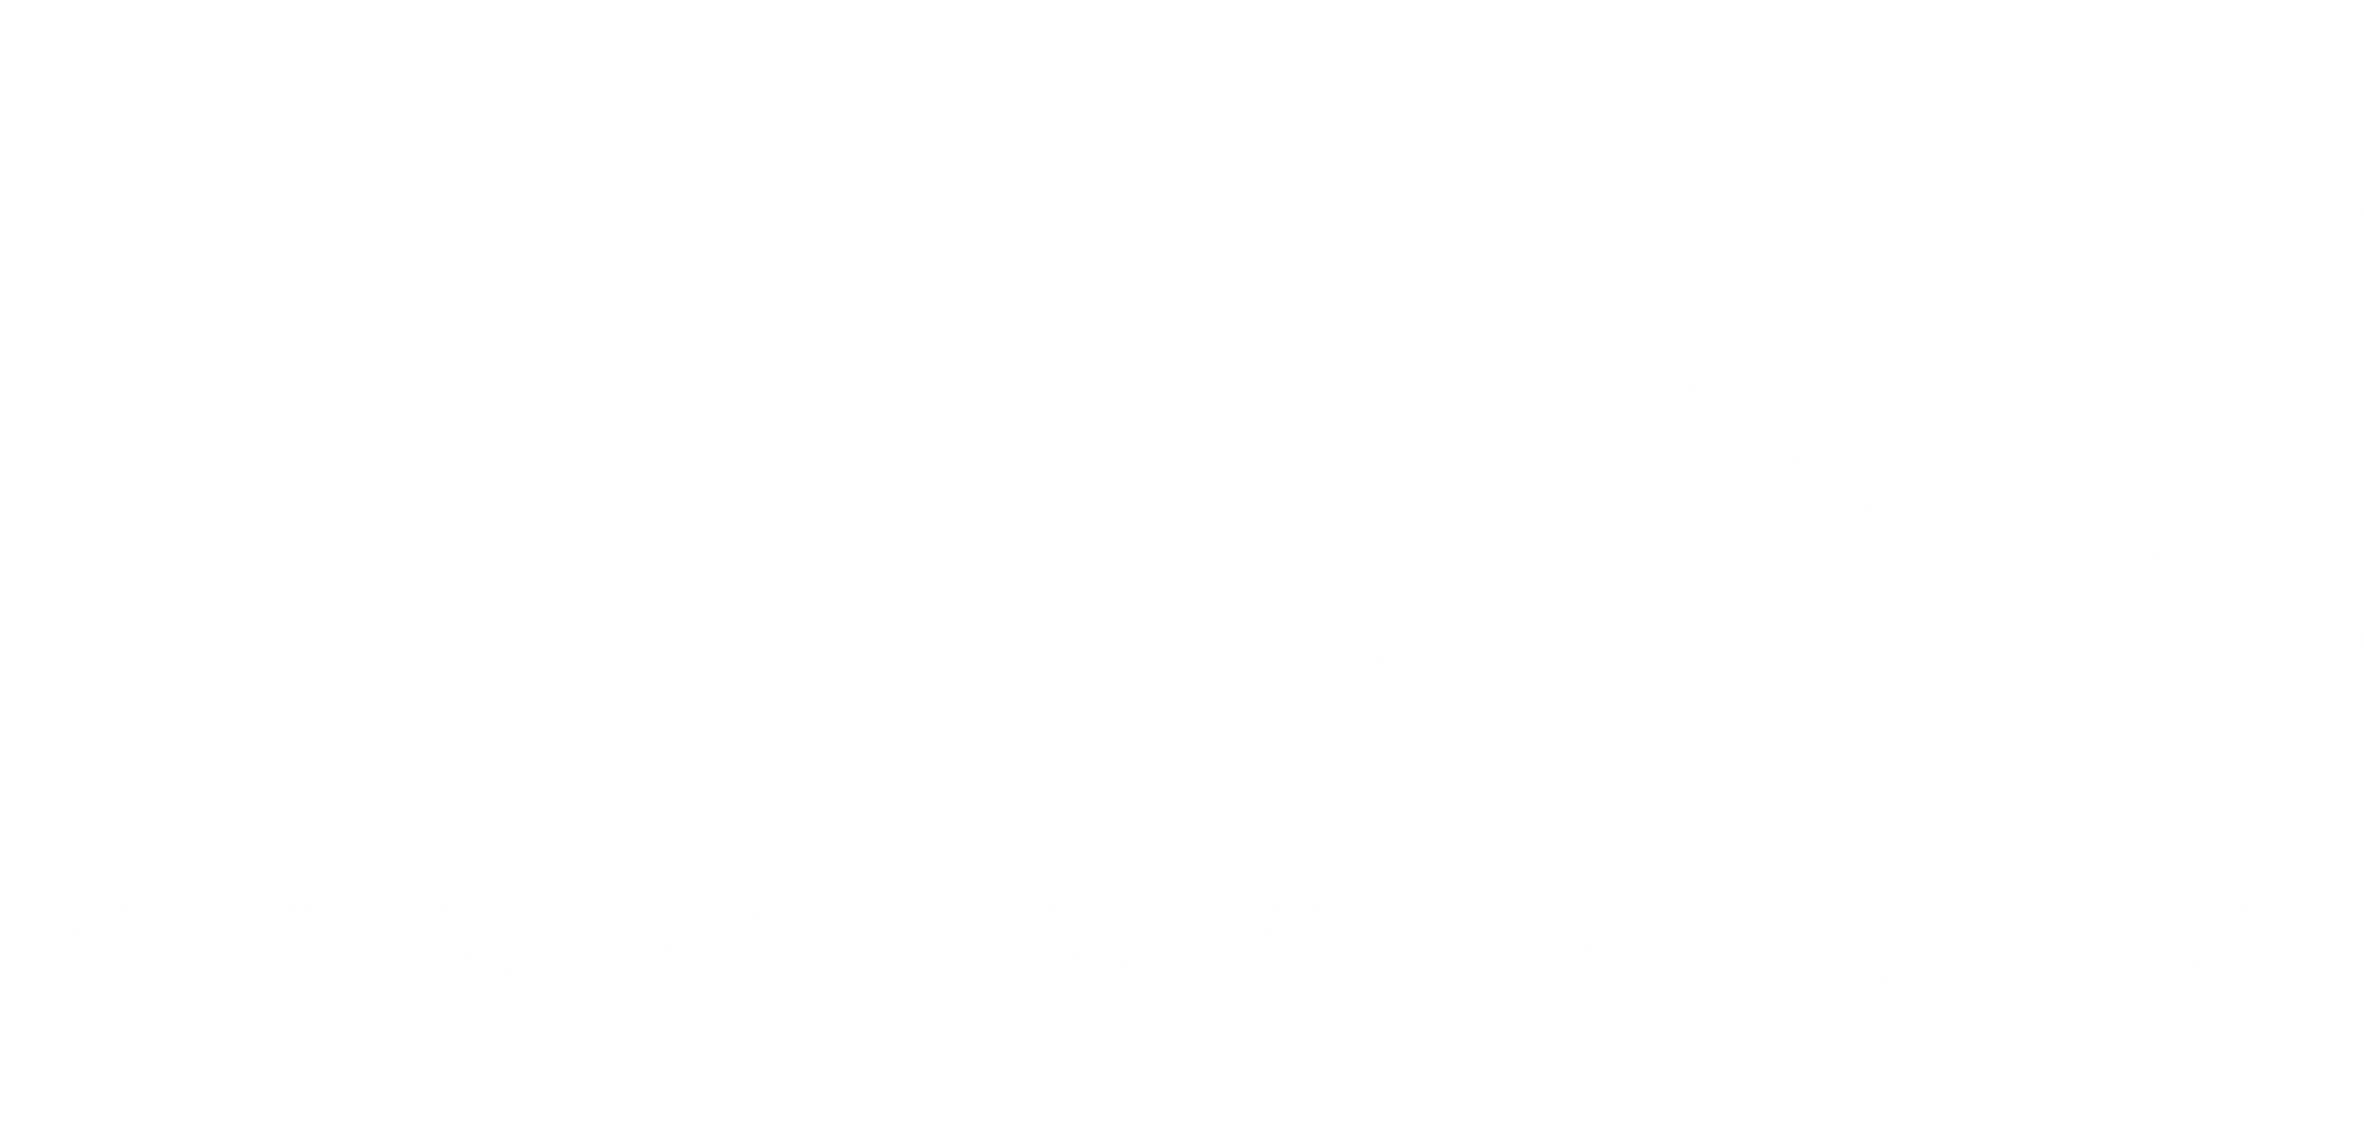 City Transportation Systems